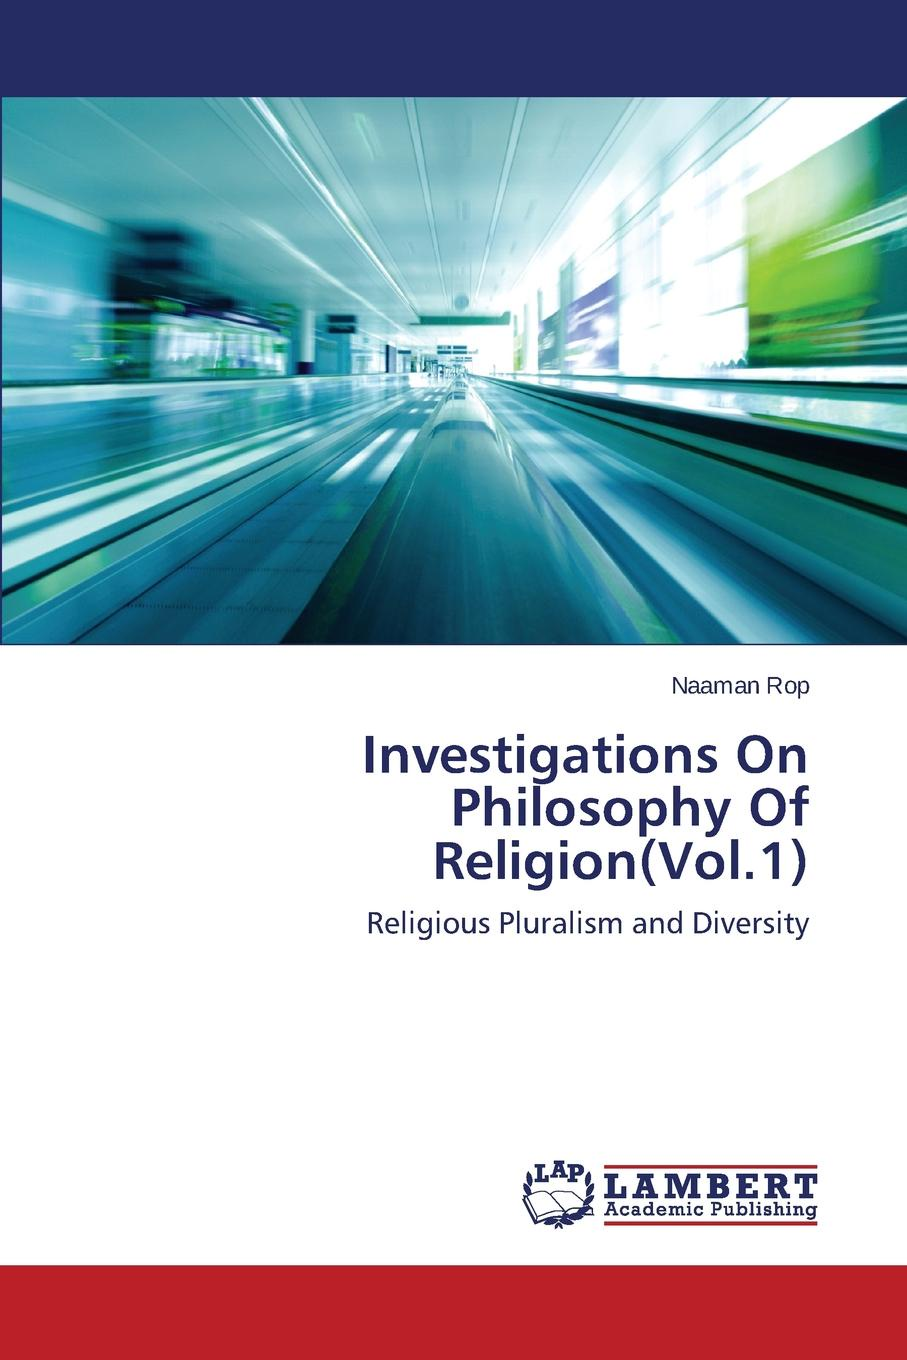 Rop Naaman Investigations On Philosophy Of Religion(Vol.1) pete mandik this is philosophy of mind an introduction isbn 9781118607480